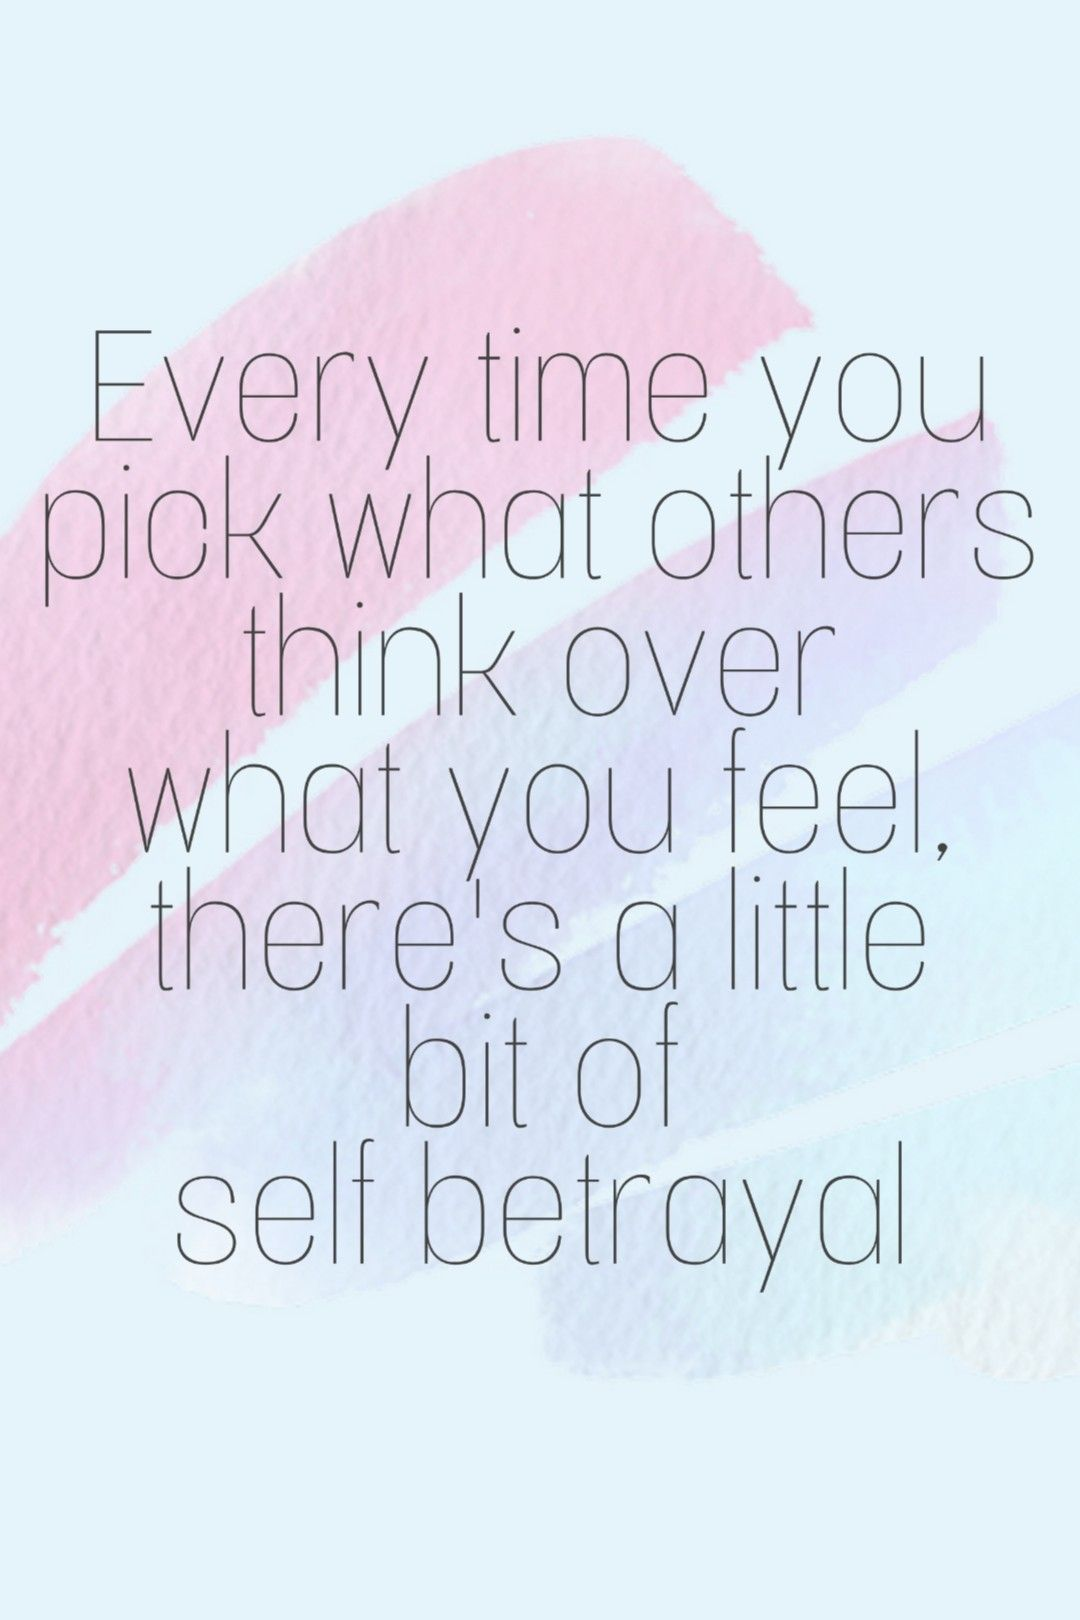 Be True Yourself And Own Your Own Actions Inspirational Quotes Positive Vibes Quotes Self Love Quotes